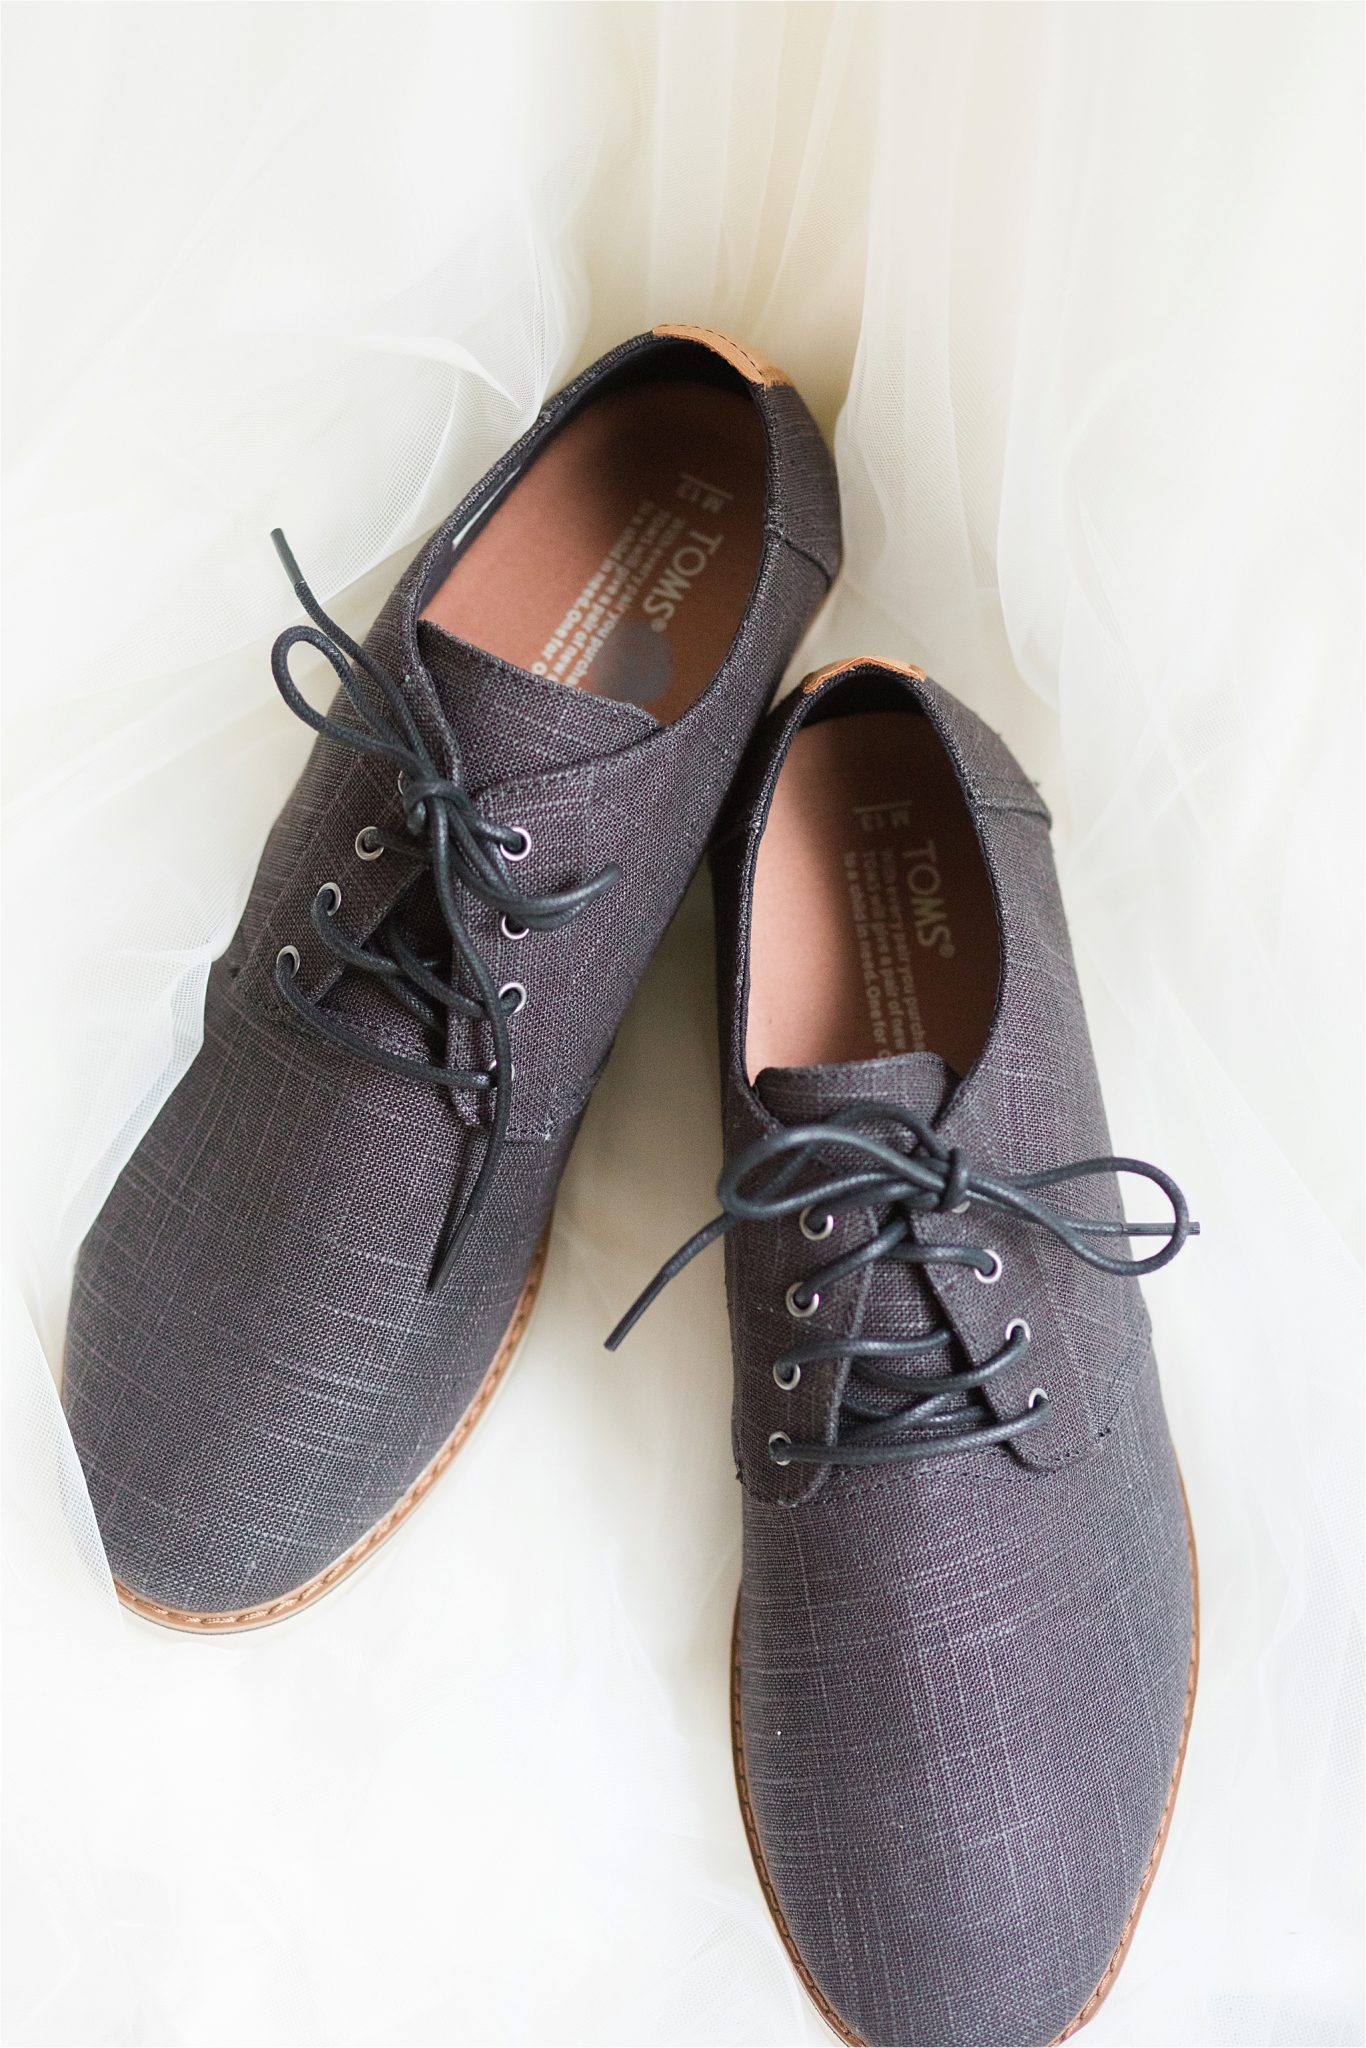 Toms-groom-shoes-textured groom shoes-grey-charcoal